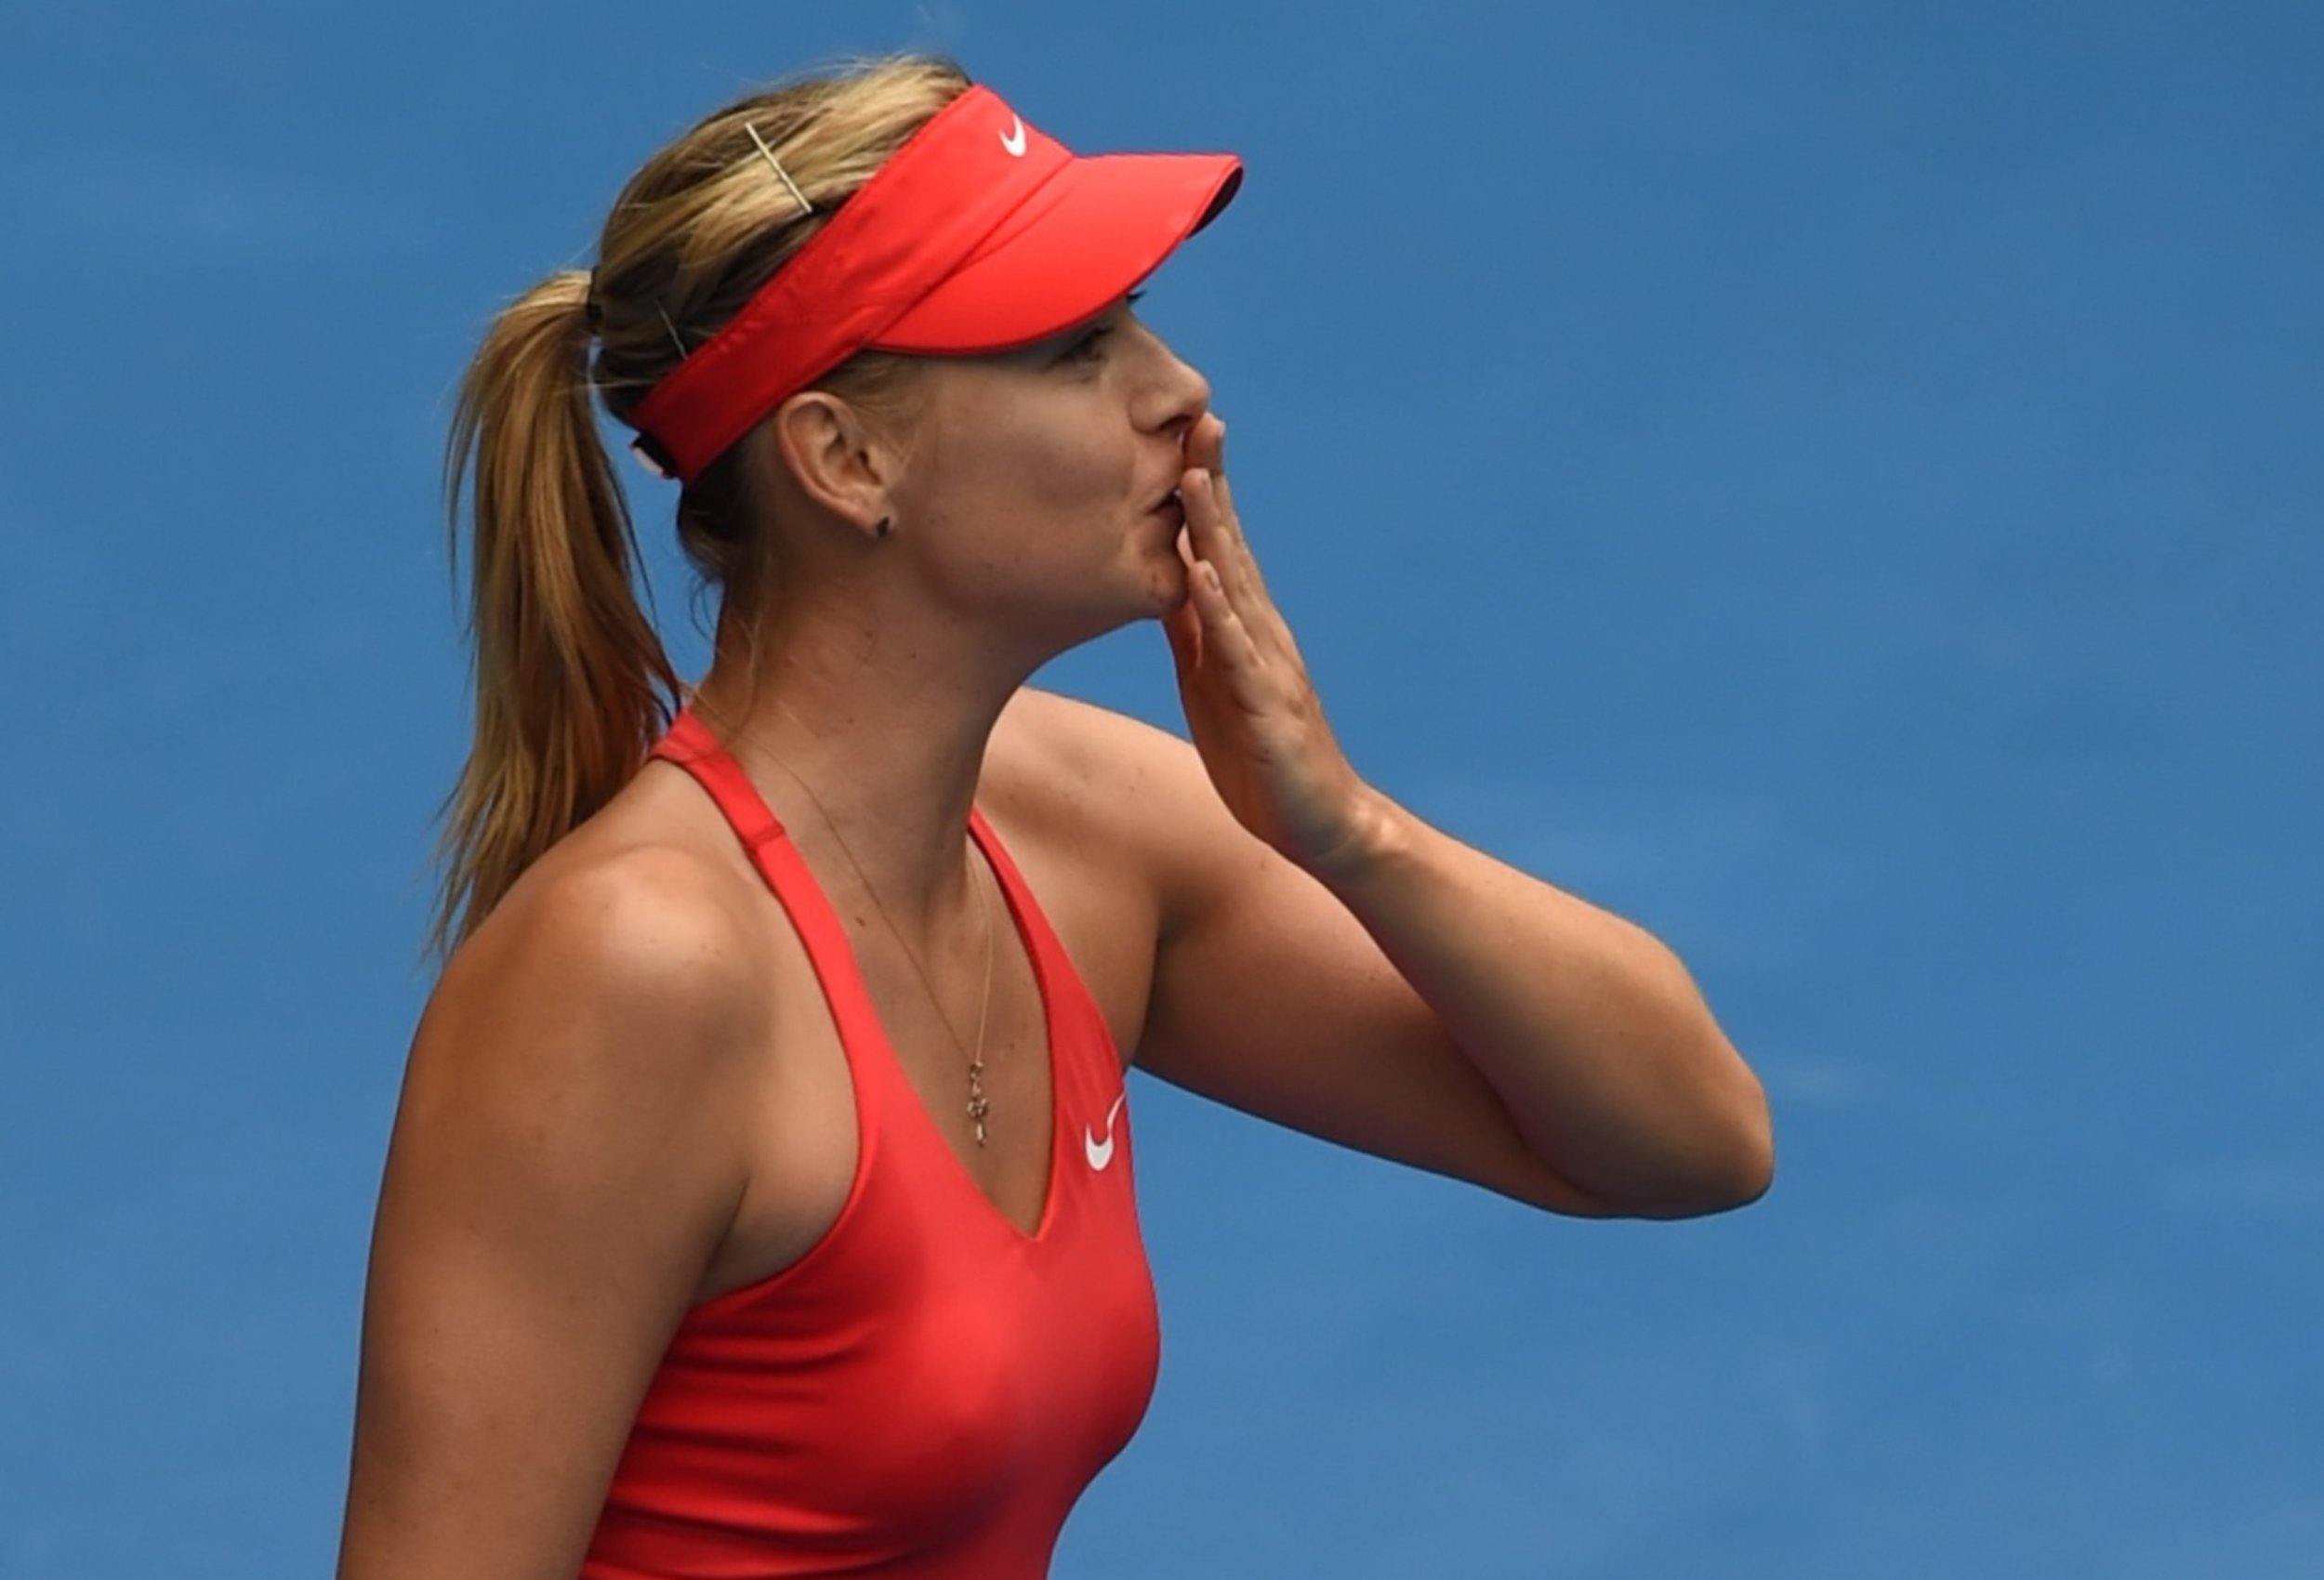 Maria Sharapova, the former world number one tennis player.